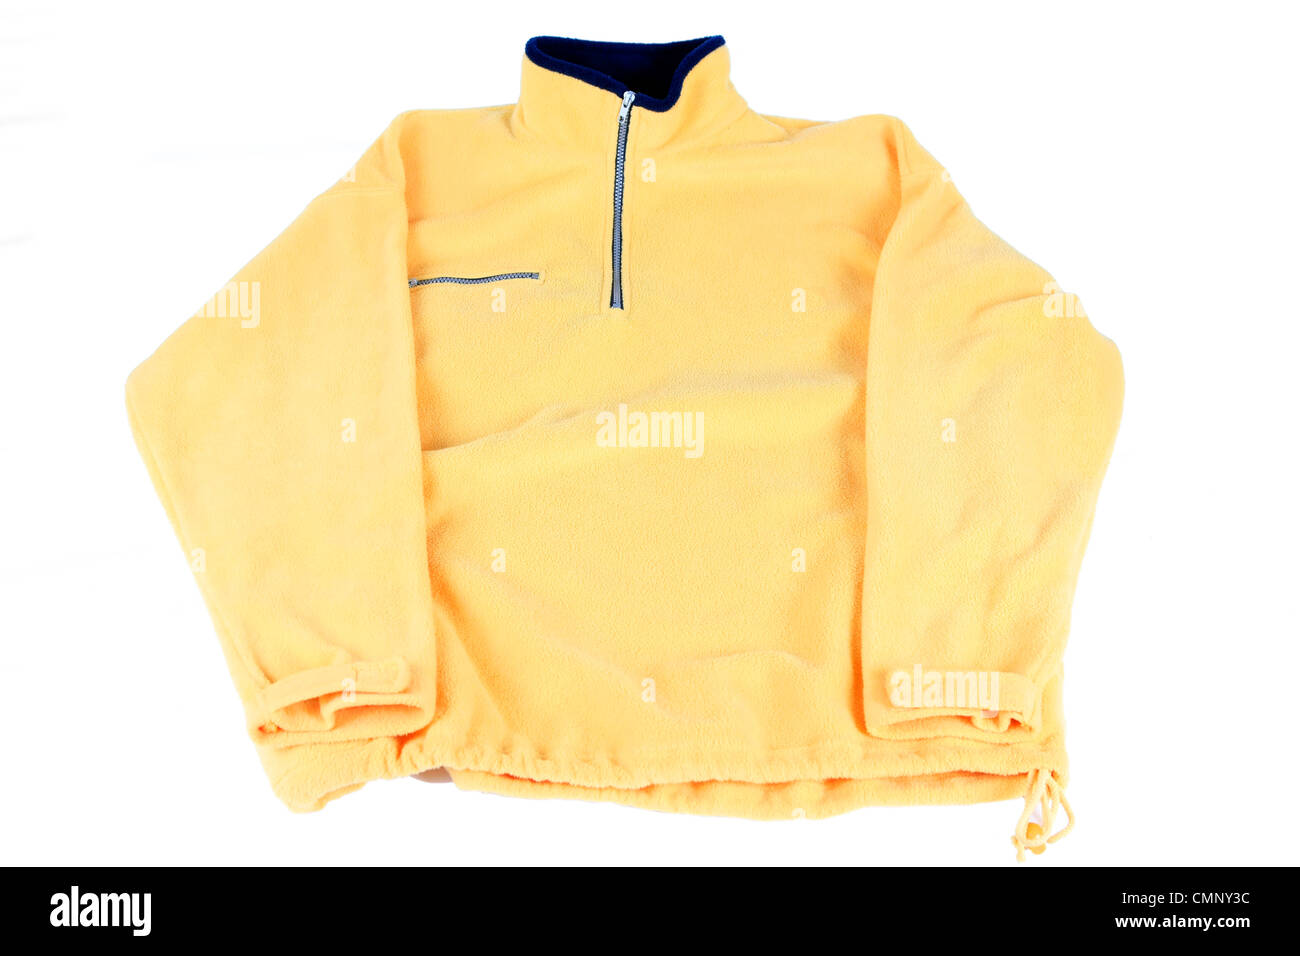 A yellow Fleece pullover jacket on a white background Stock Photo ...